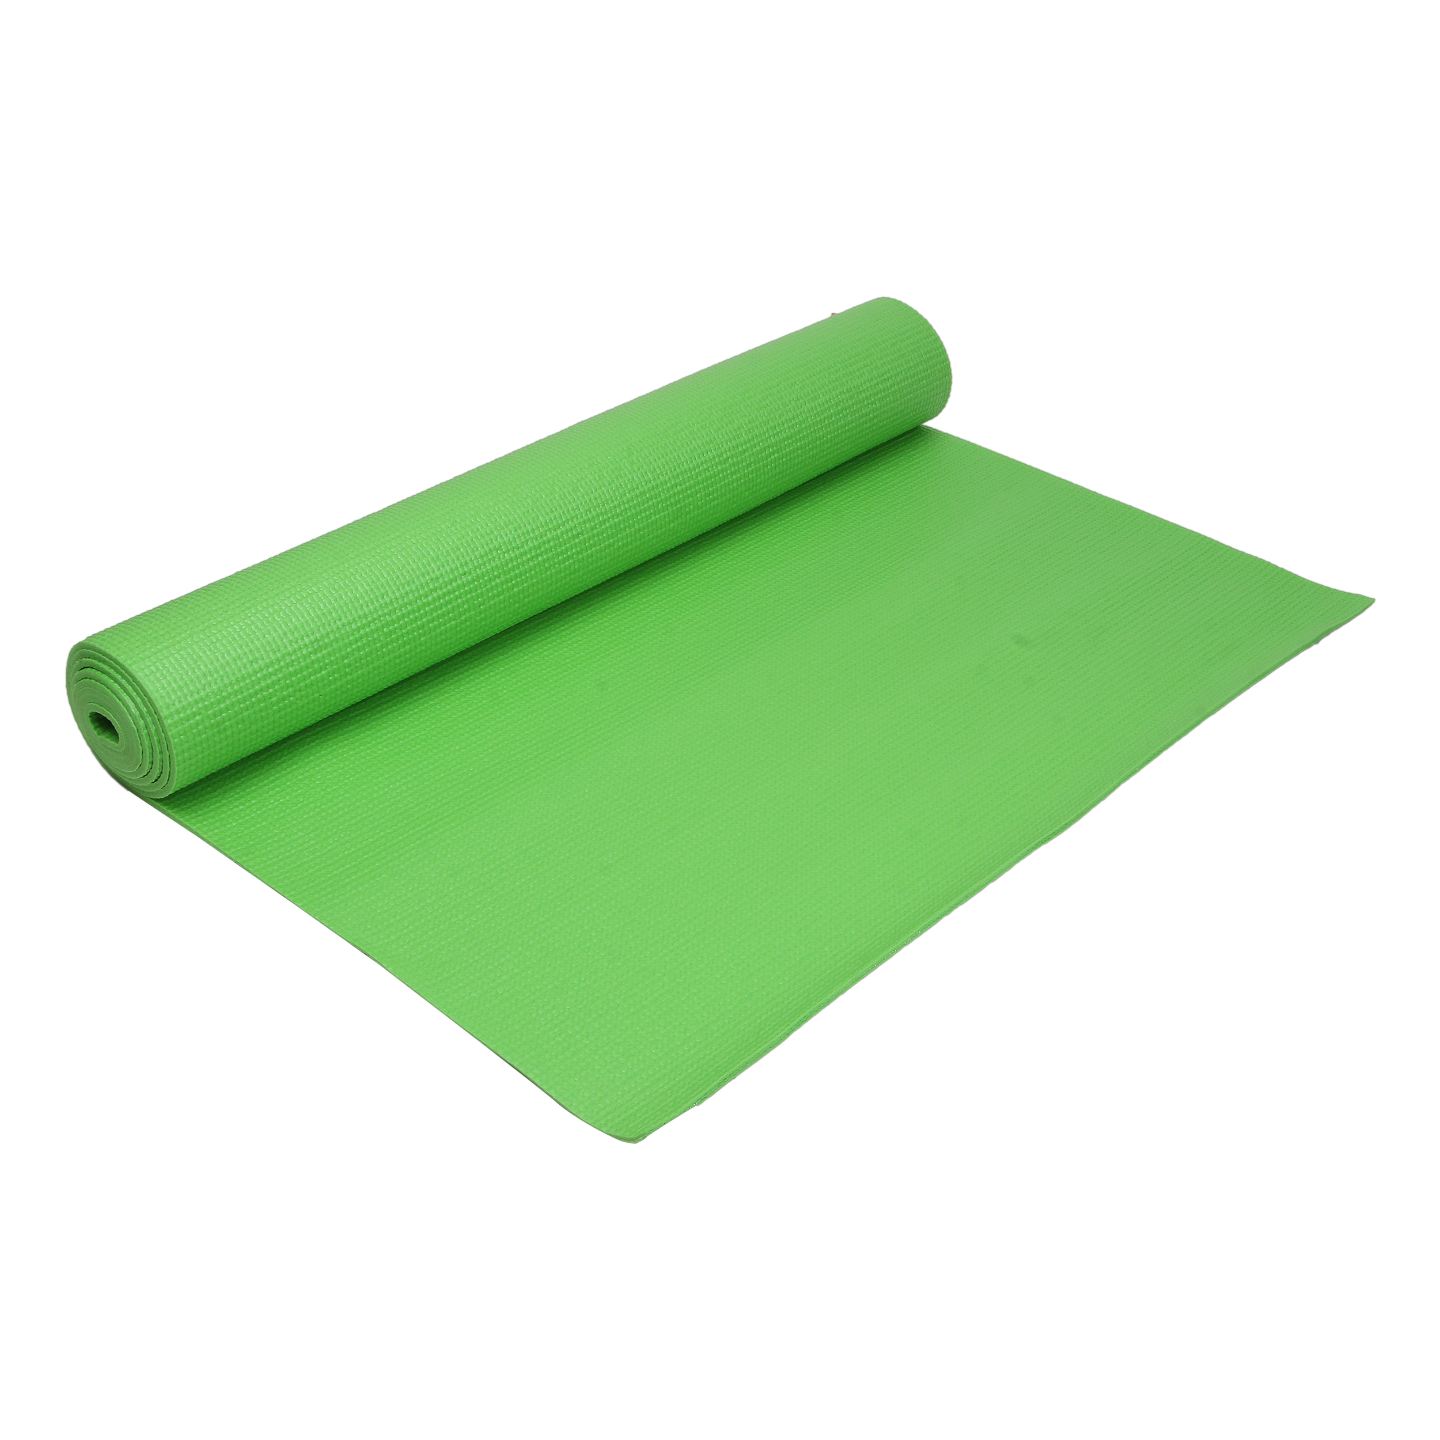 PROLINE PVC YOGA MAT 4mm